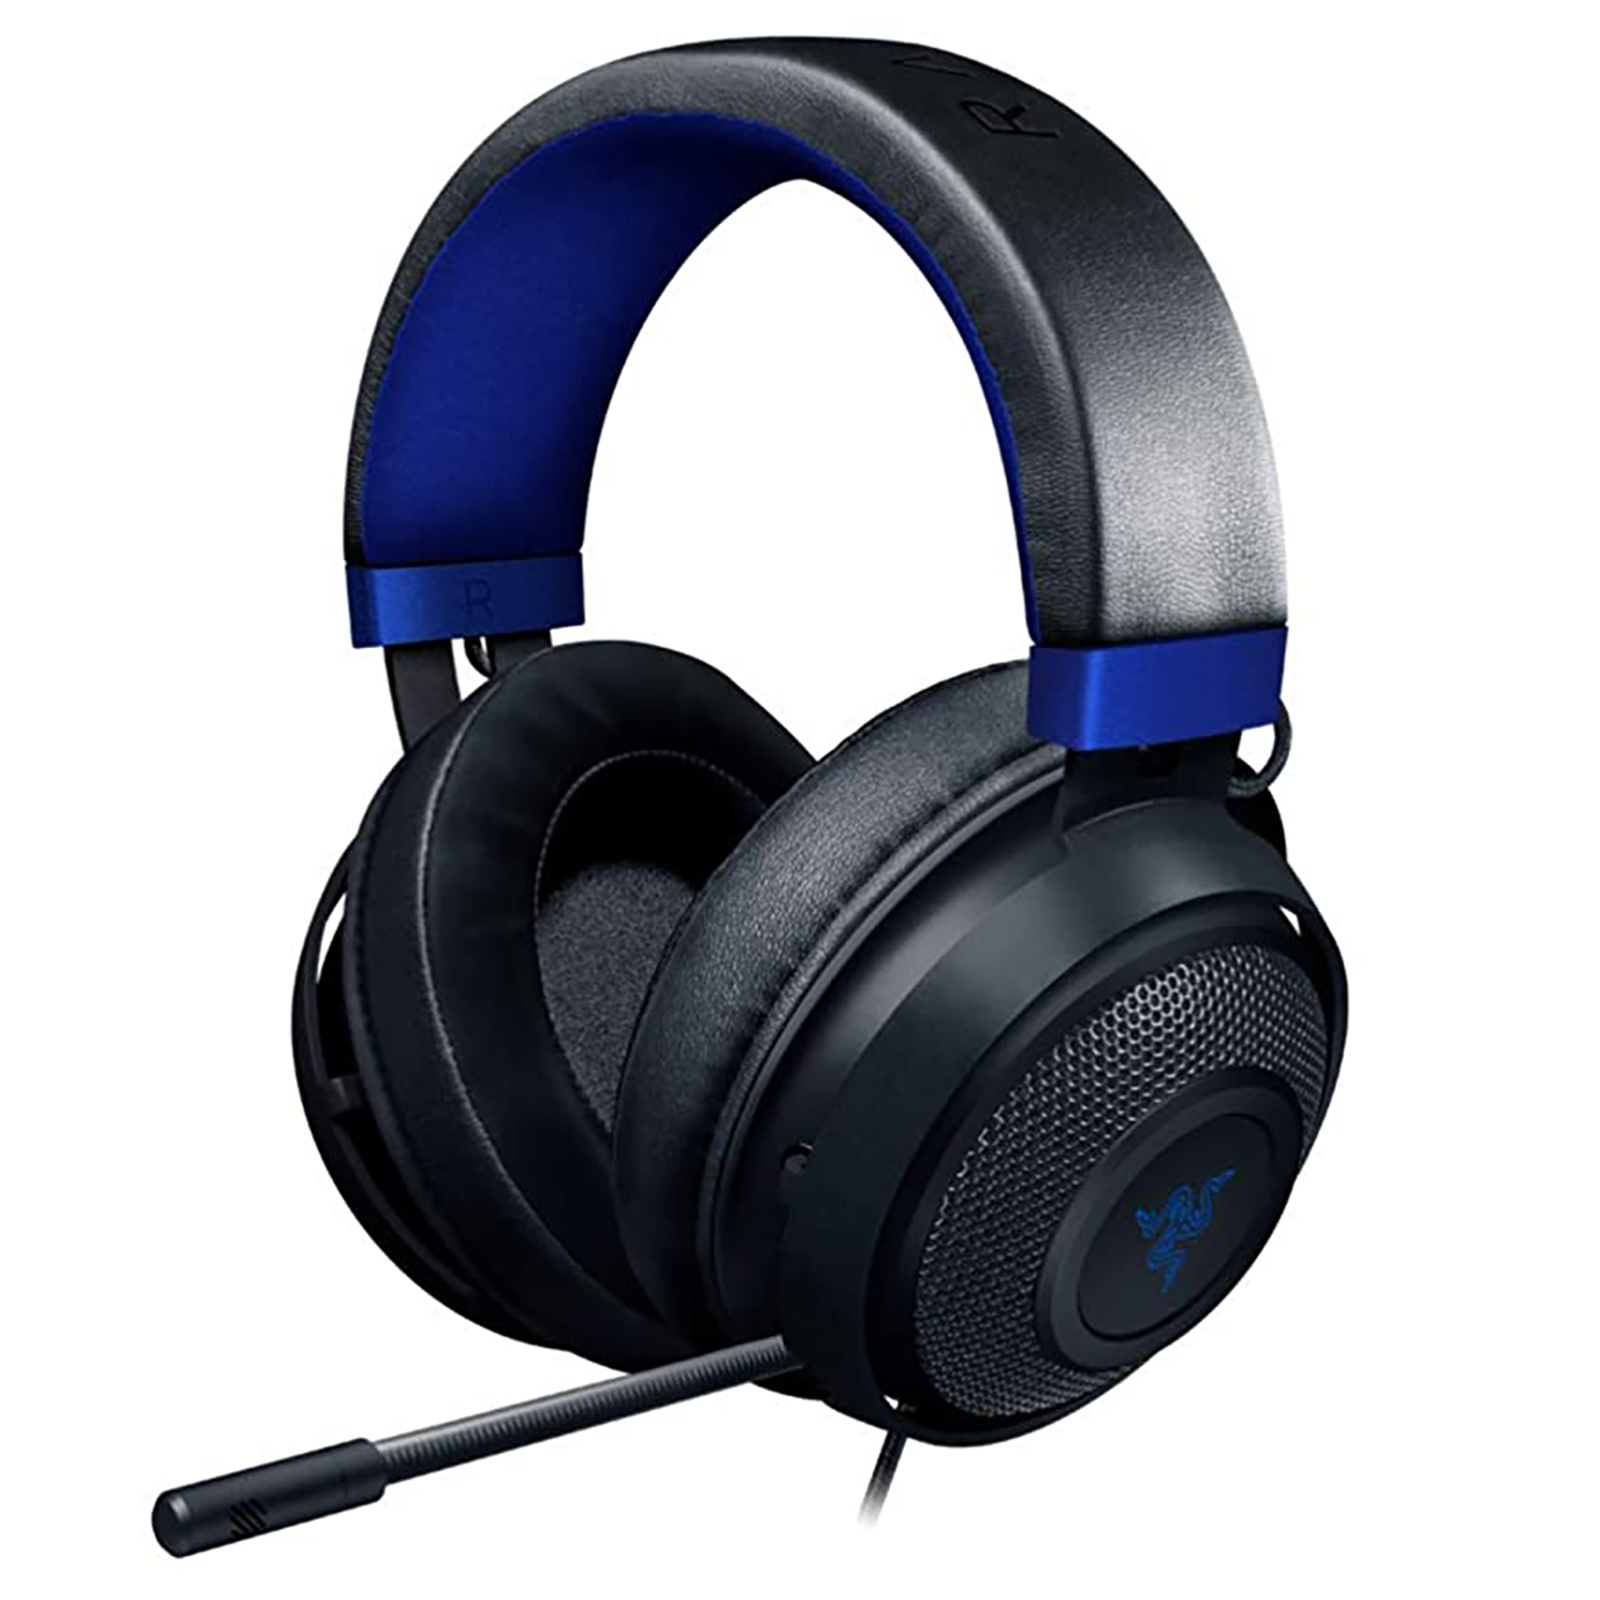 Razer Kraken for Console Over-Ear Wired Gaming Headset with Mic (Clear & Powerful Sound, RZ04-02830500-R3M1, Black)_1